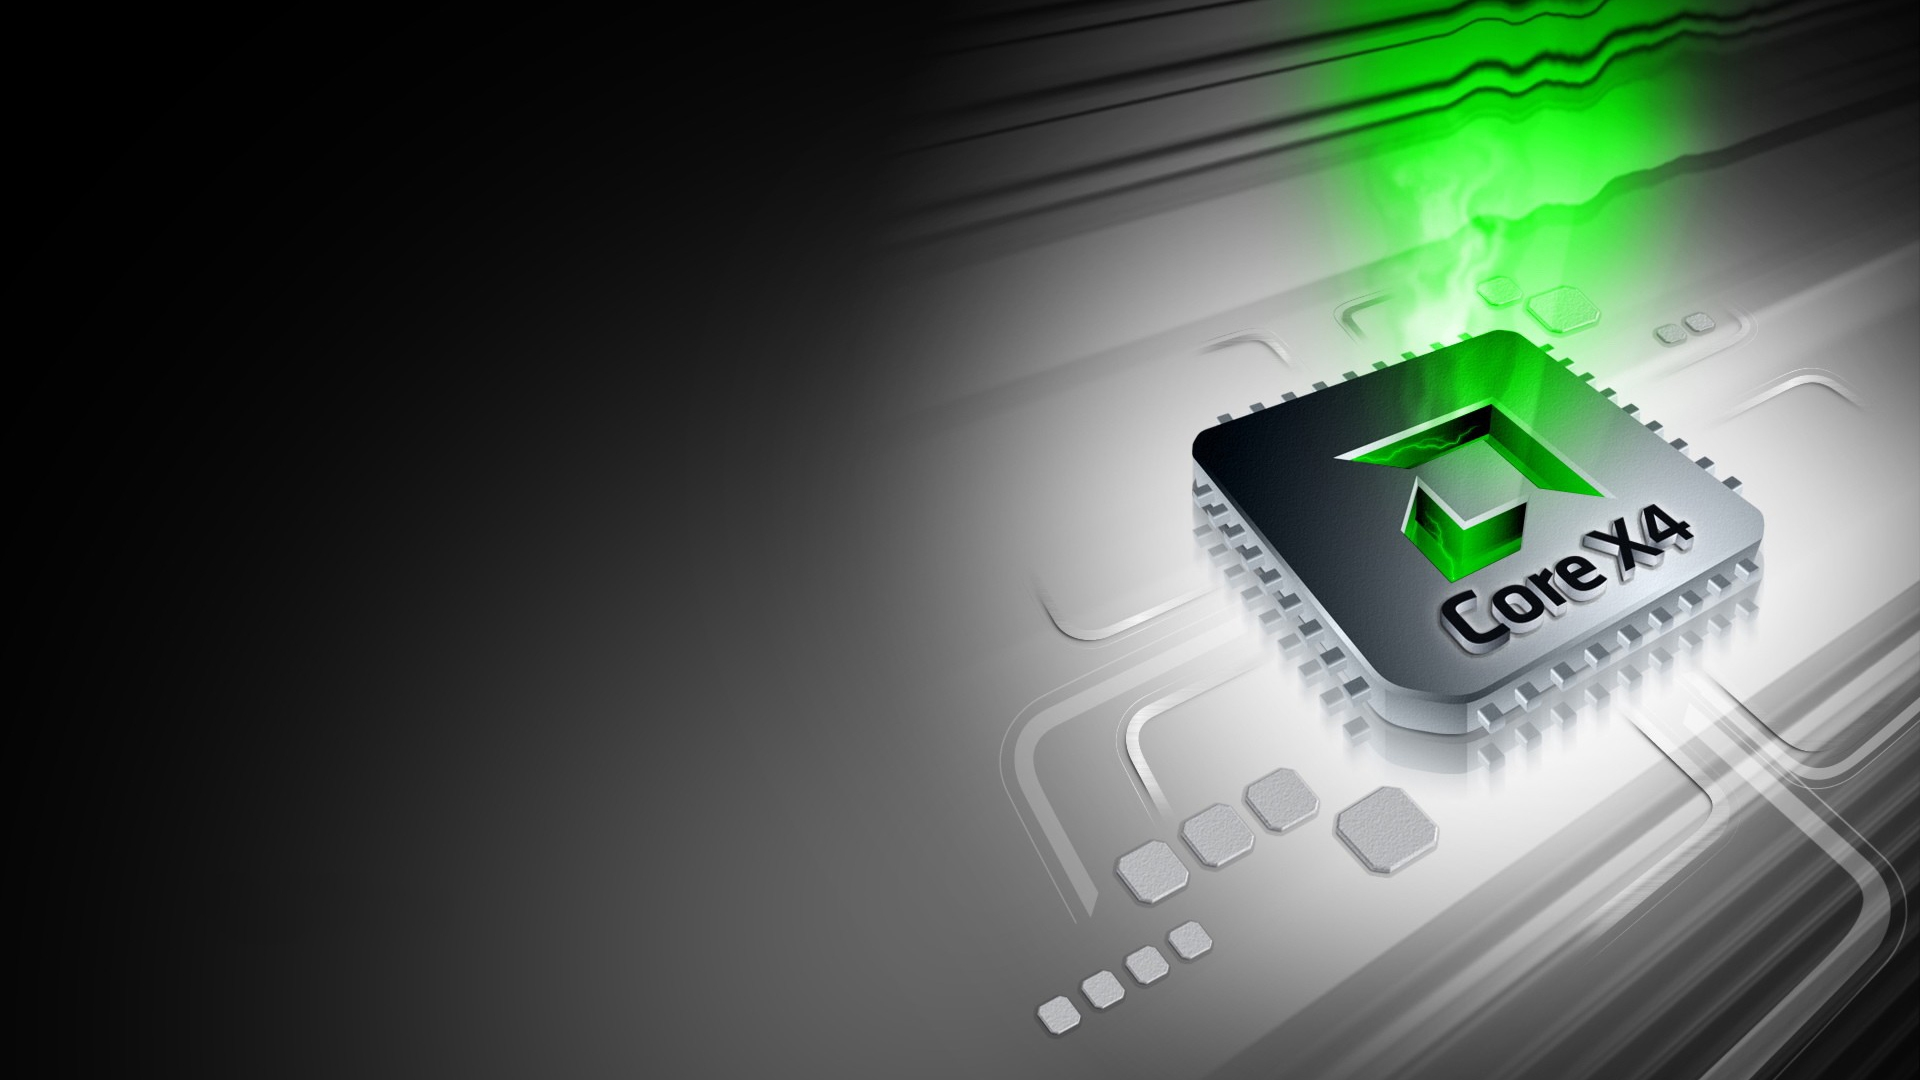 Amd core x4 high definition wallpapers hd wallpapers